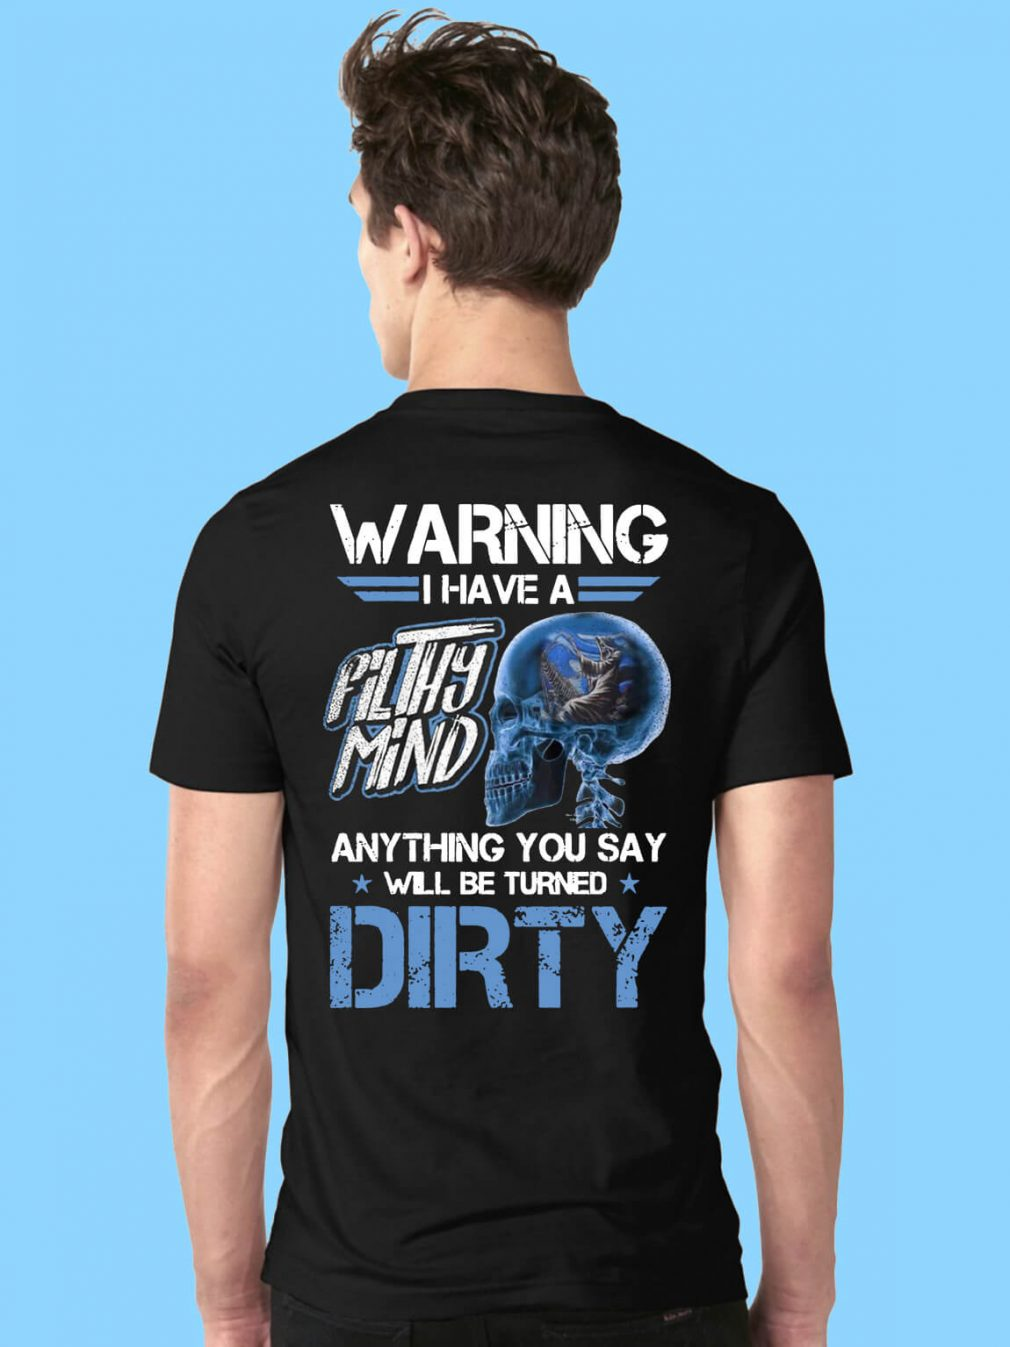 Warning I have a filthy mind anything you say will be turned dirty shirt